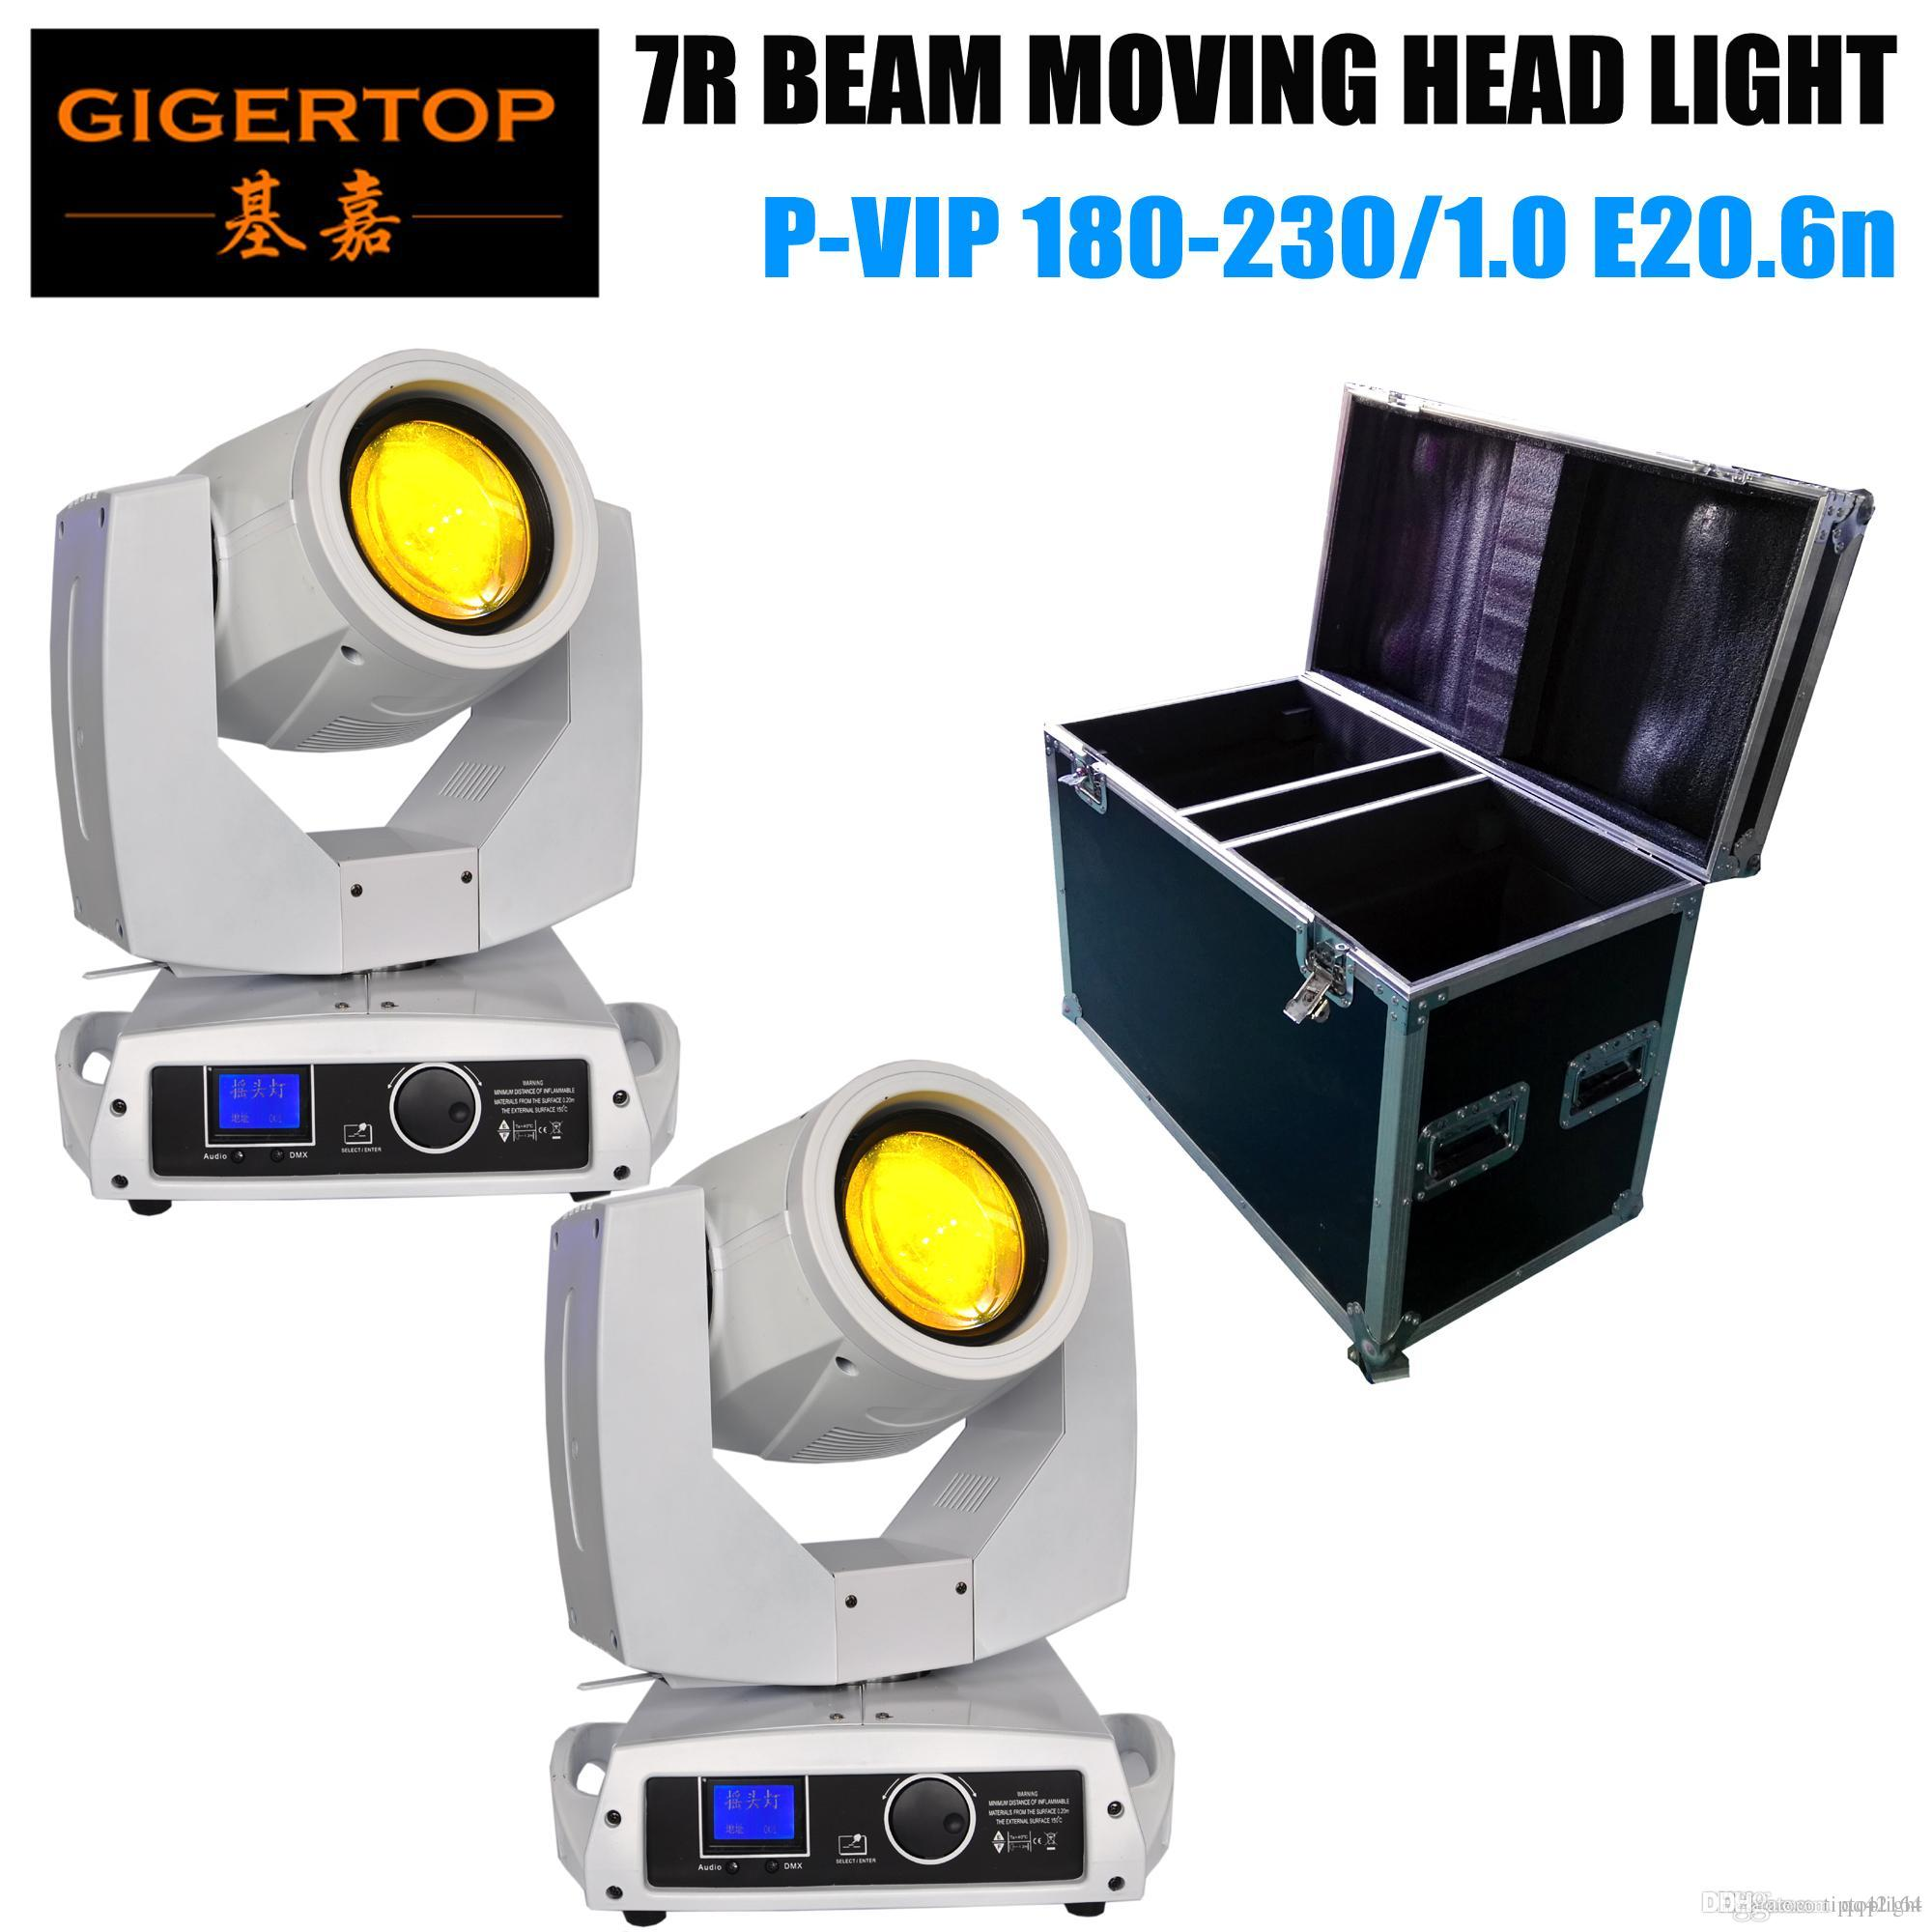 2in1 Road Pack impilabile American DJ Vizi Beam 5R Moving Head Light 7R Tecnologia lampada a scarica 8000K, cassa bianca da 2.000 ore